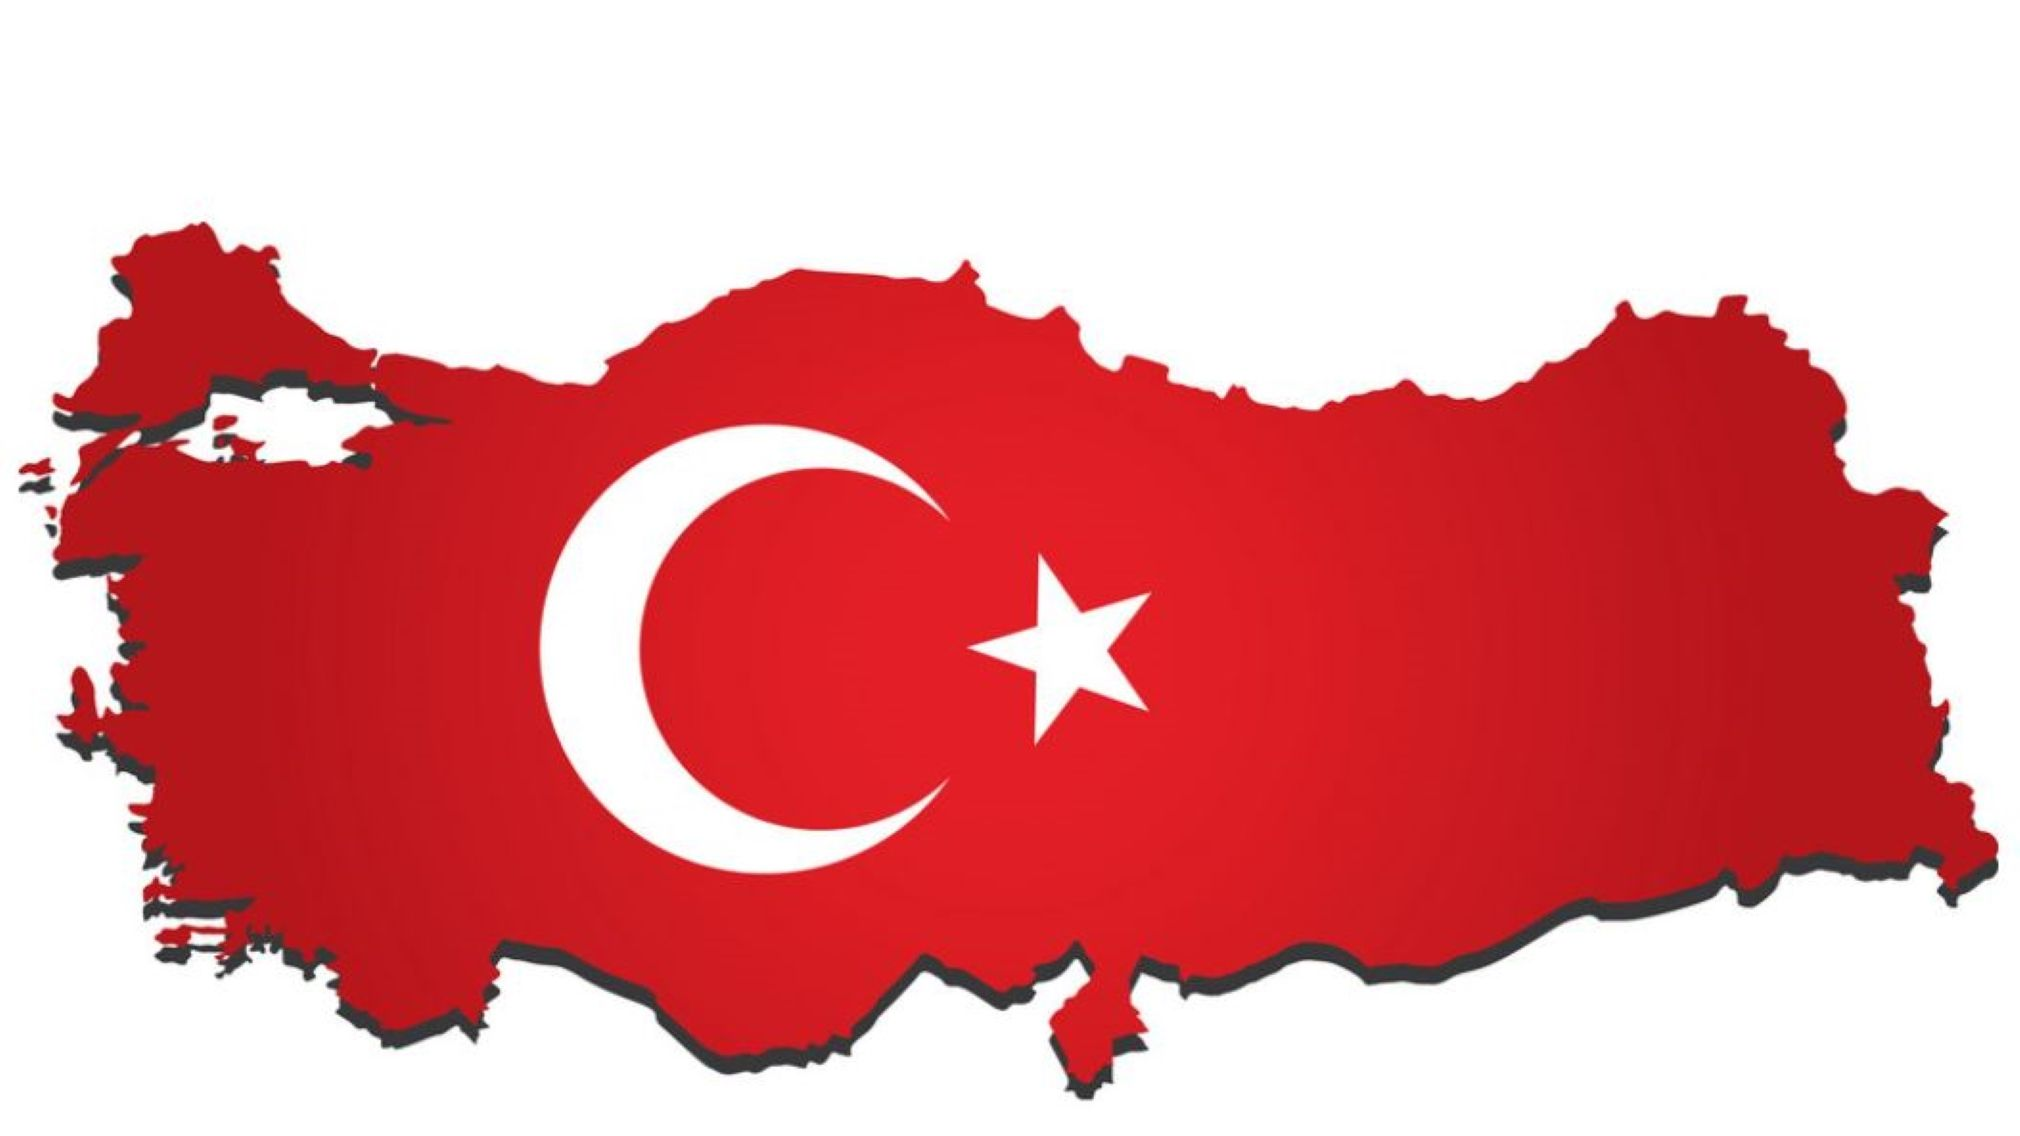 Outline of Turkey with Turkish flag in centre